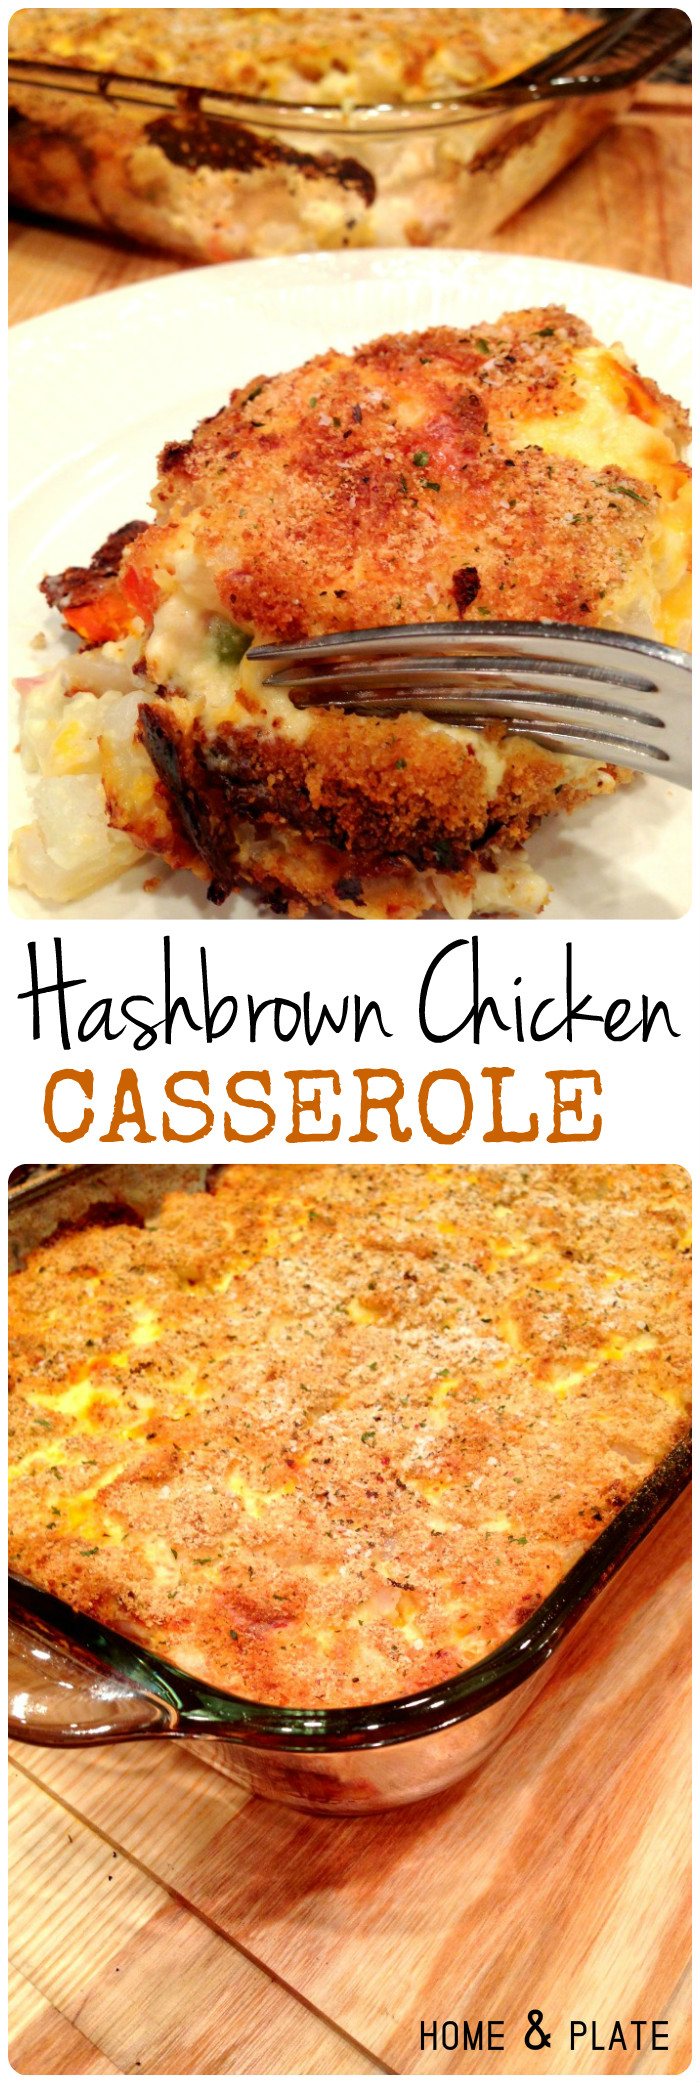 Hash Brown Chicken Casserole |  This casserole has tender bits of roasted chicken breast, hash brown potatoes, shredded cheddar cheese and your favorite mixed vegetables.